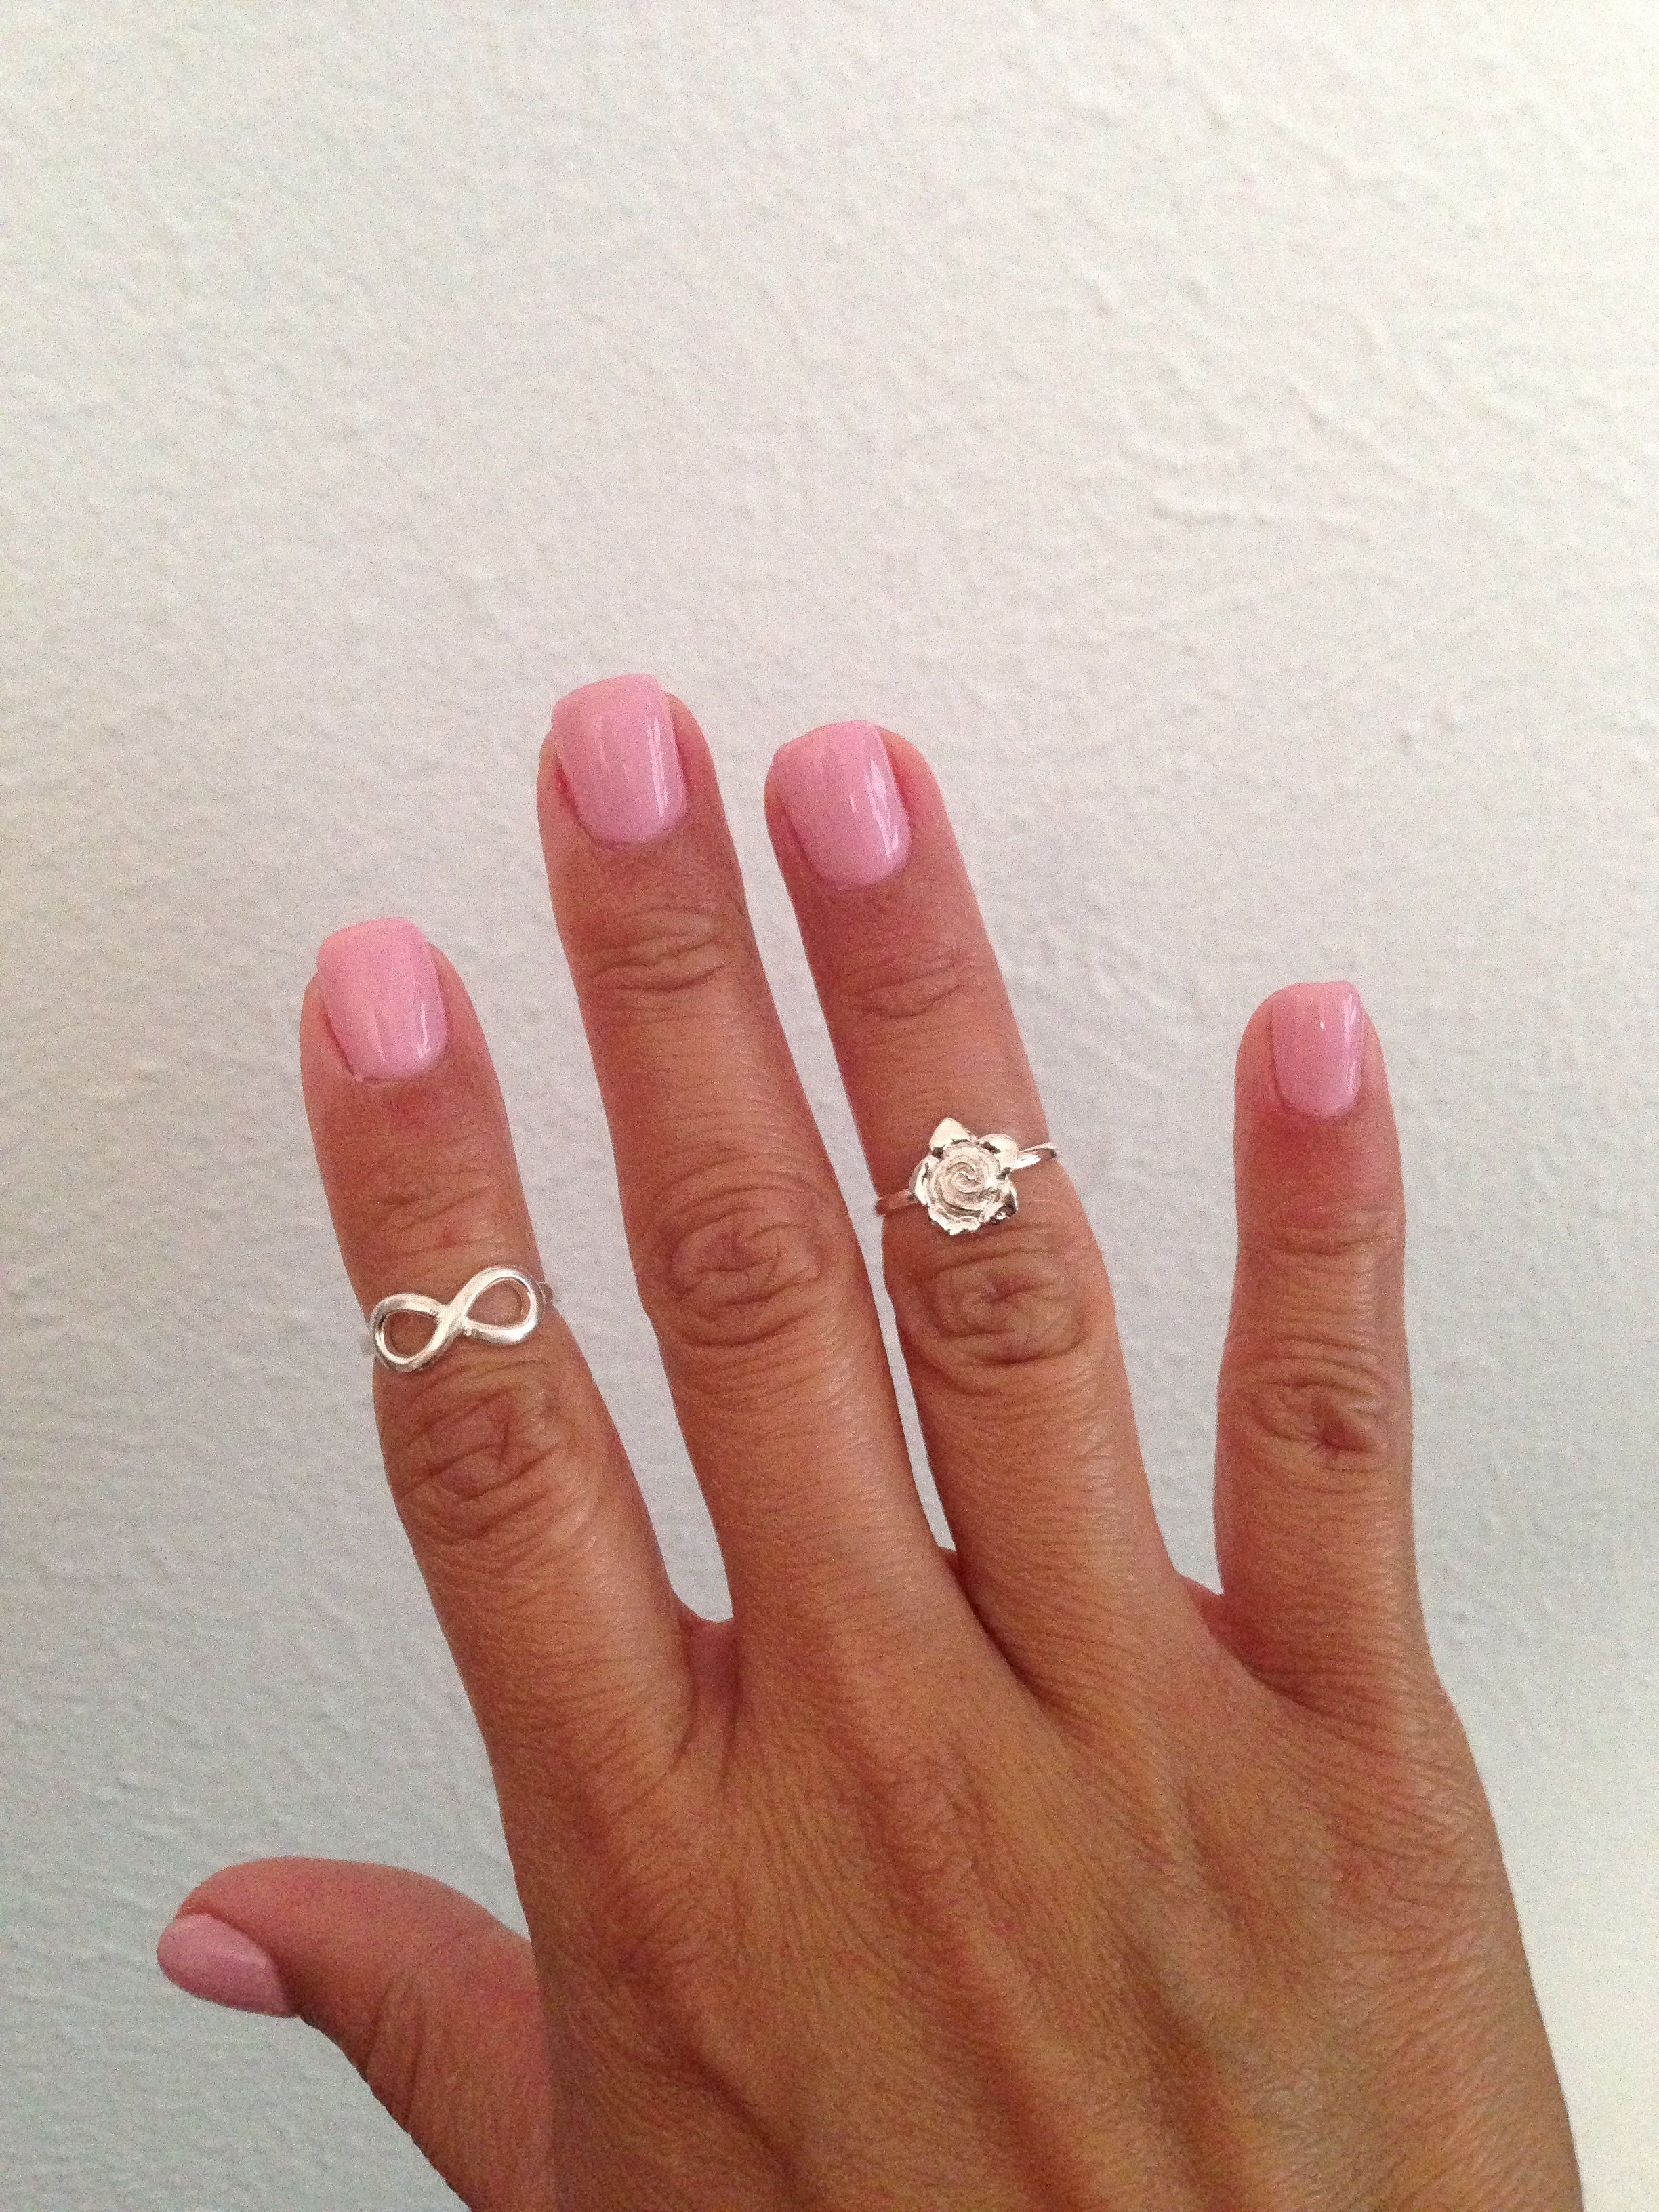 Acrylic Overlay Over My Natural Nails No Tips Topped With Light Pink Shellac Midi Rings Were Purchased At Kohl S